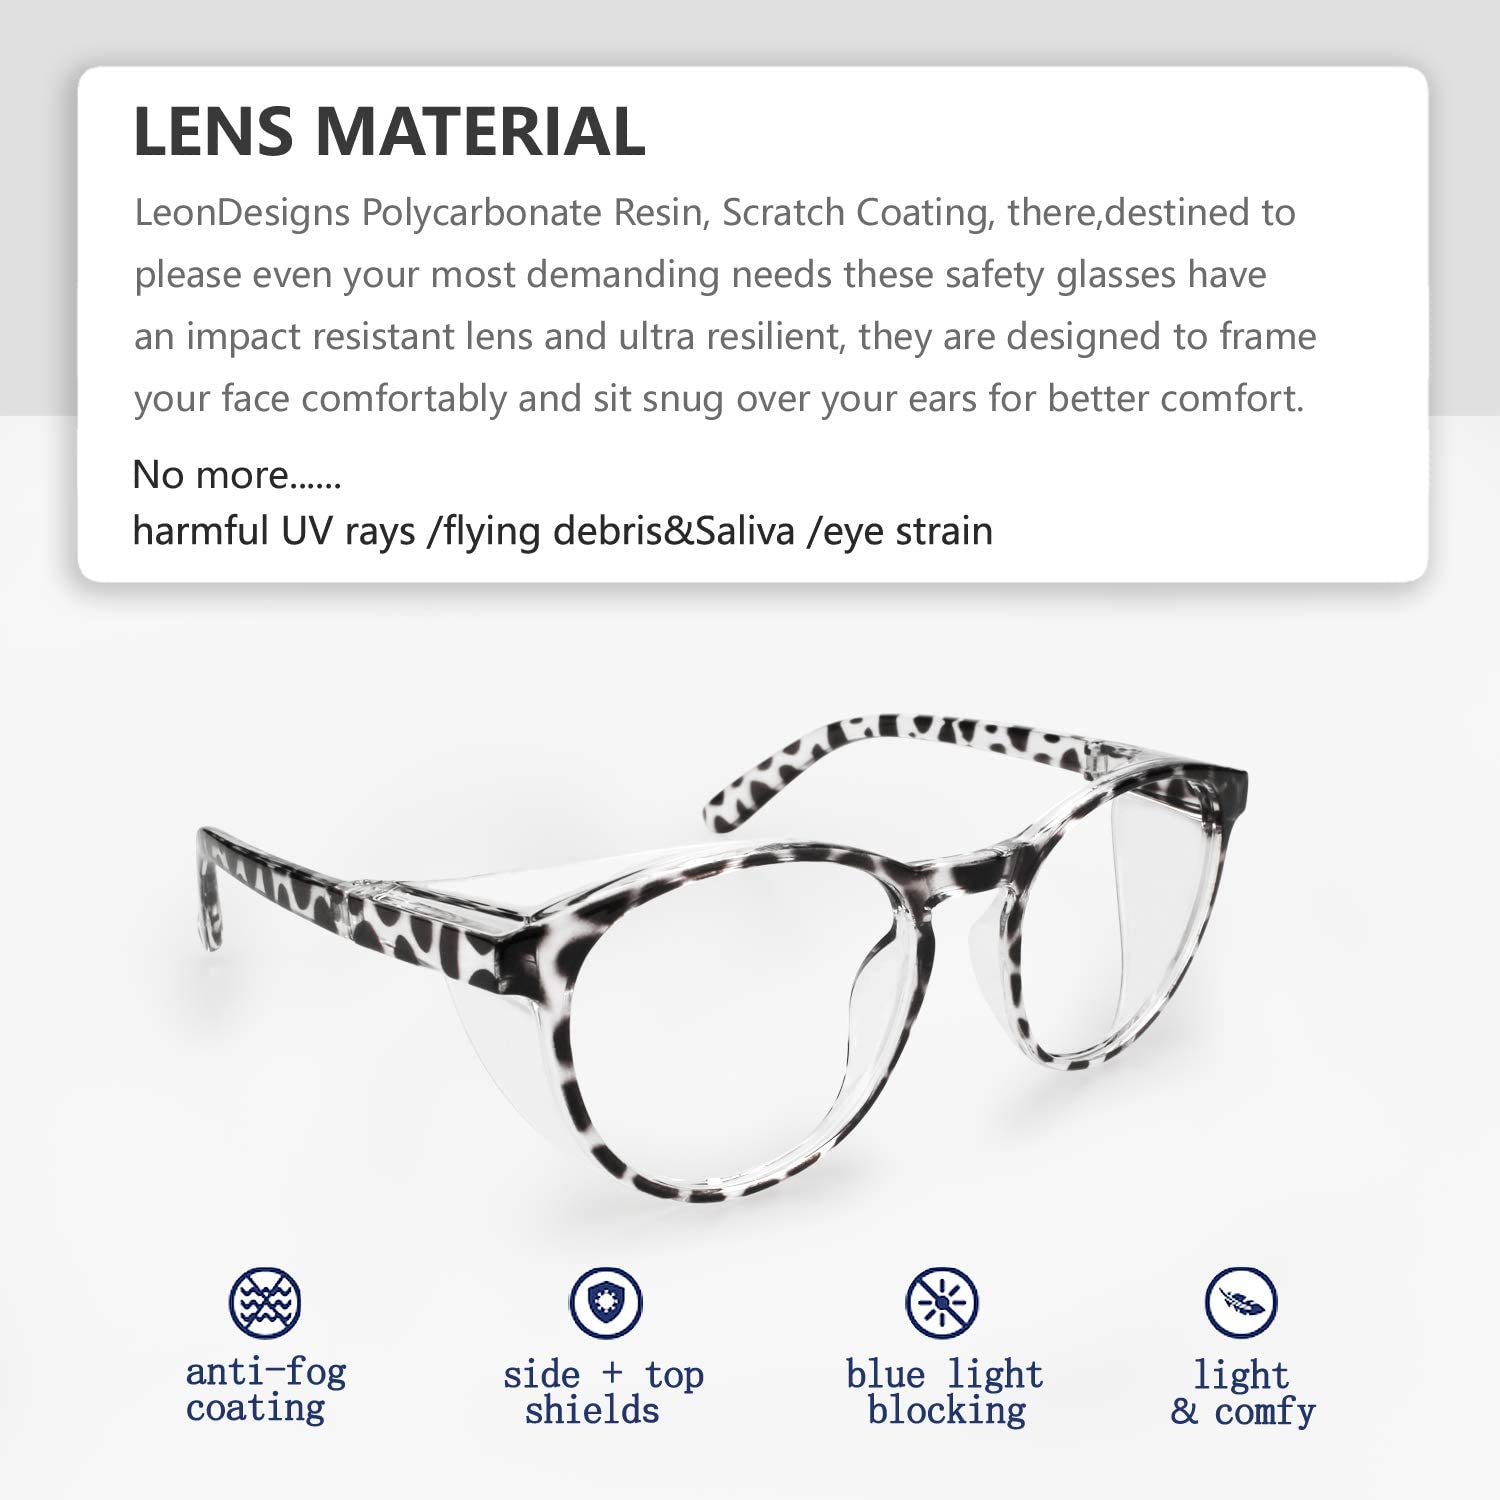 Fashion Eye Protection Blue Light Blocking Glasses with Side Shields LeonDesigns Stylish Round Safety Glasses Anti-Fog Women coffee Lab Clear Protection Goggles